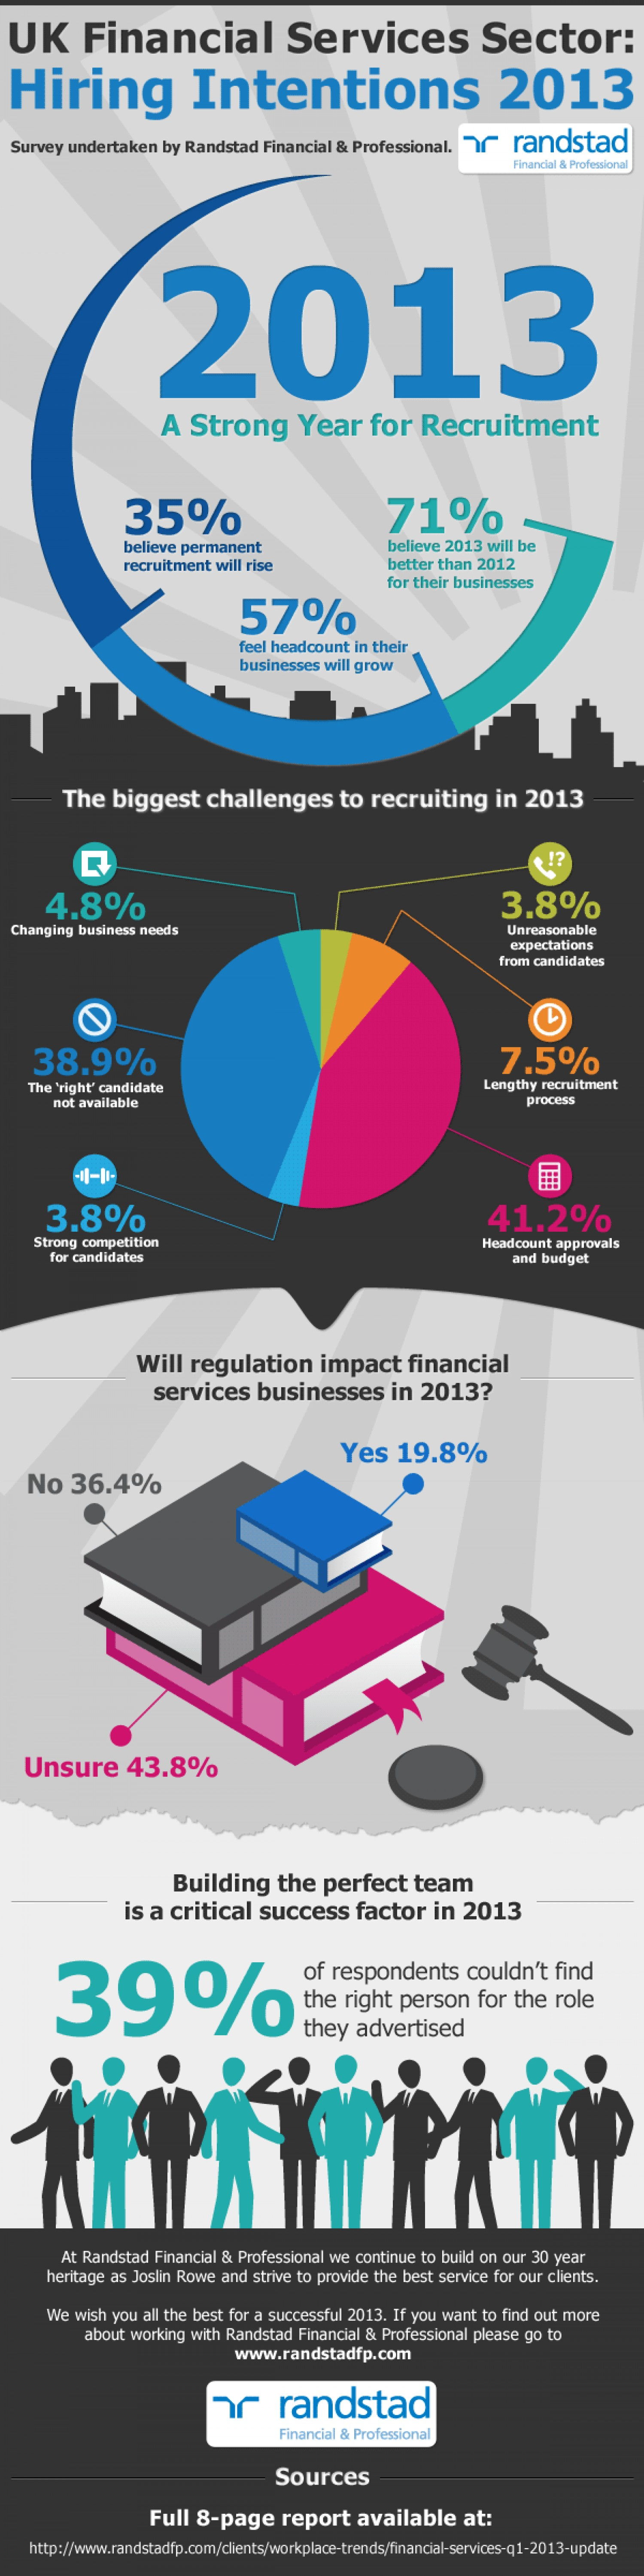 7. UK Financial Services Hiring Intentions 2013